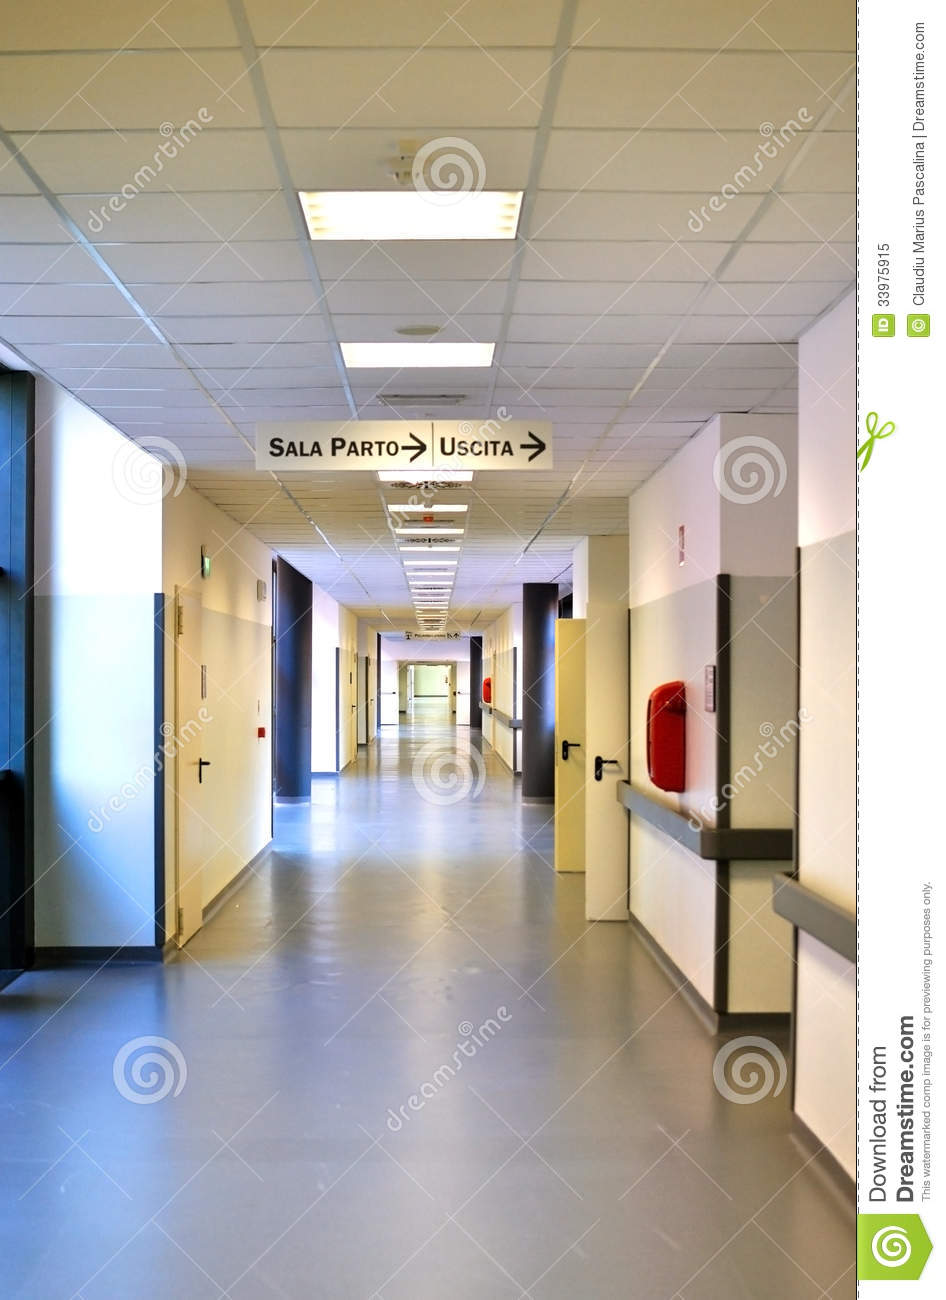 Modern hospital interior - Birth Exit Hallway Hospital Inside Interior